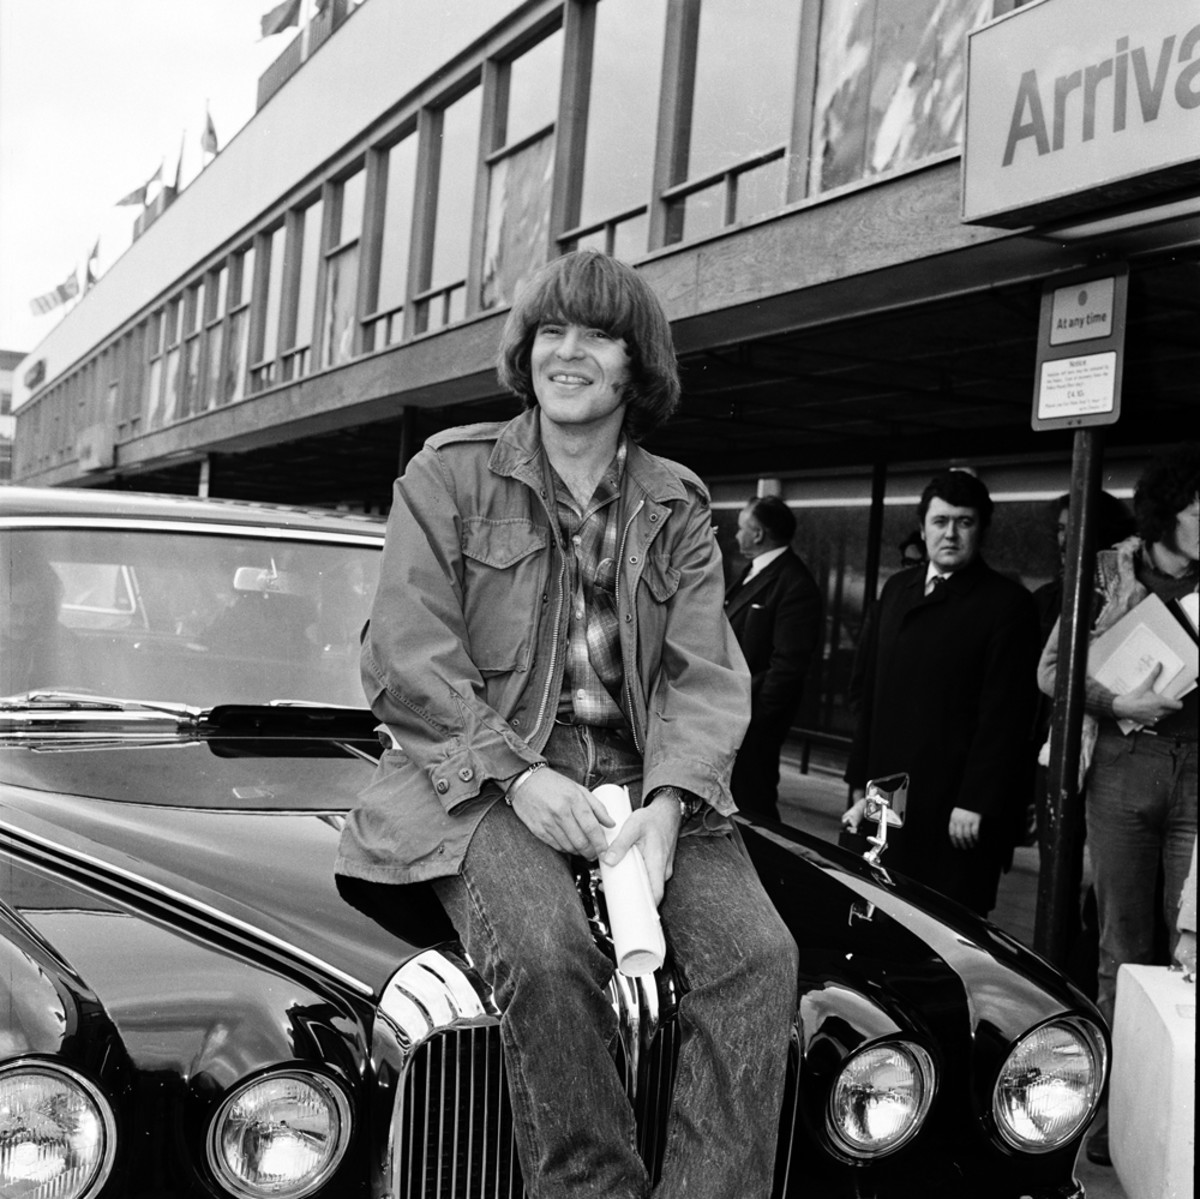 John Fogerty at Heathrow Airport, London, England, on April 7, 1970. Photo by Michael Putland/Getty Images.